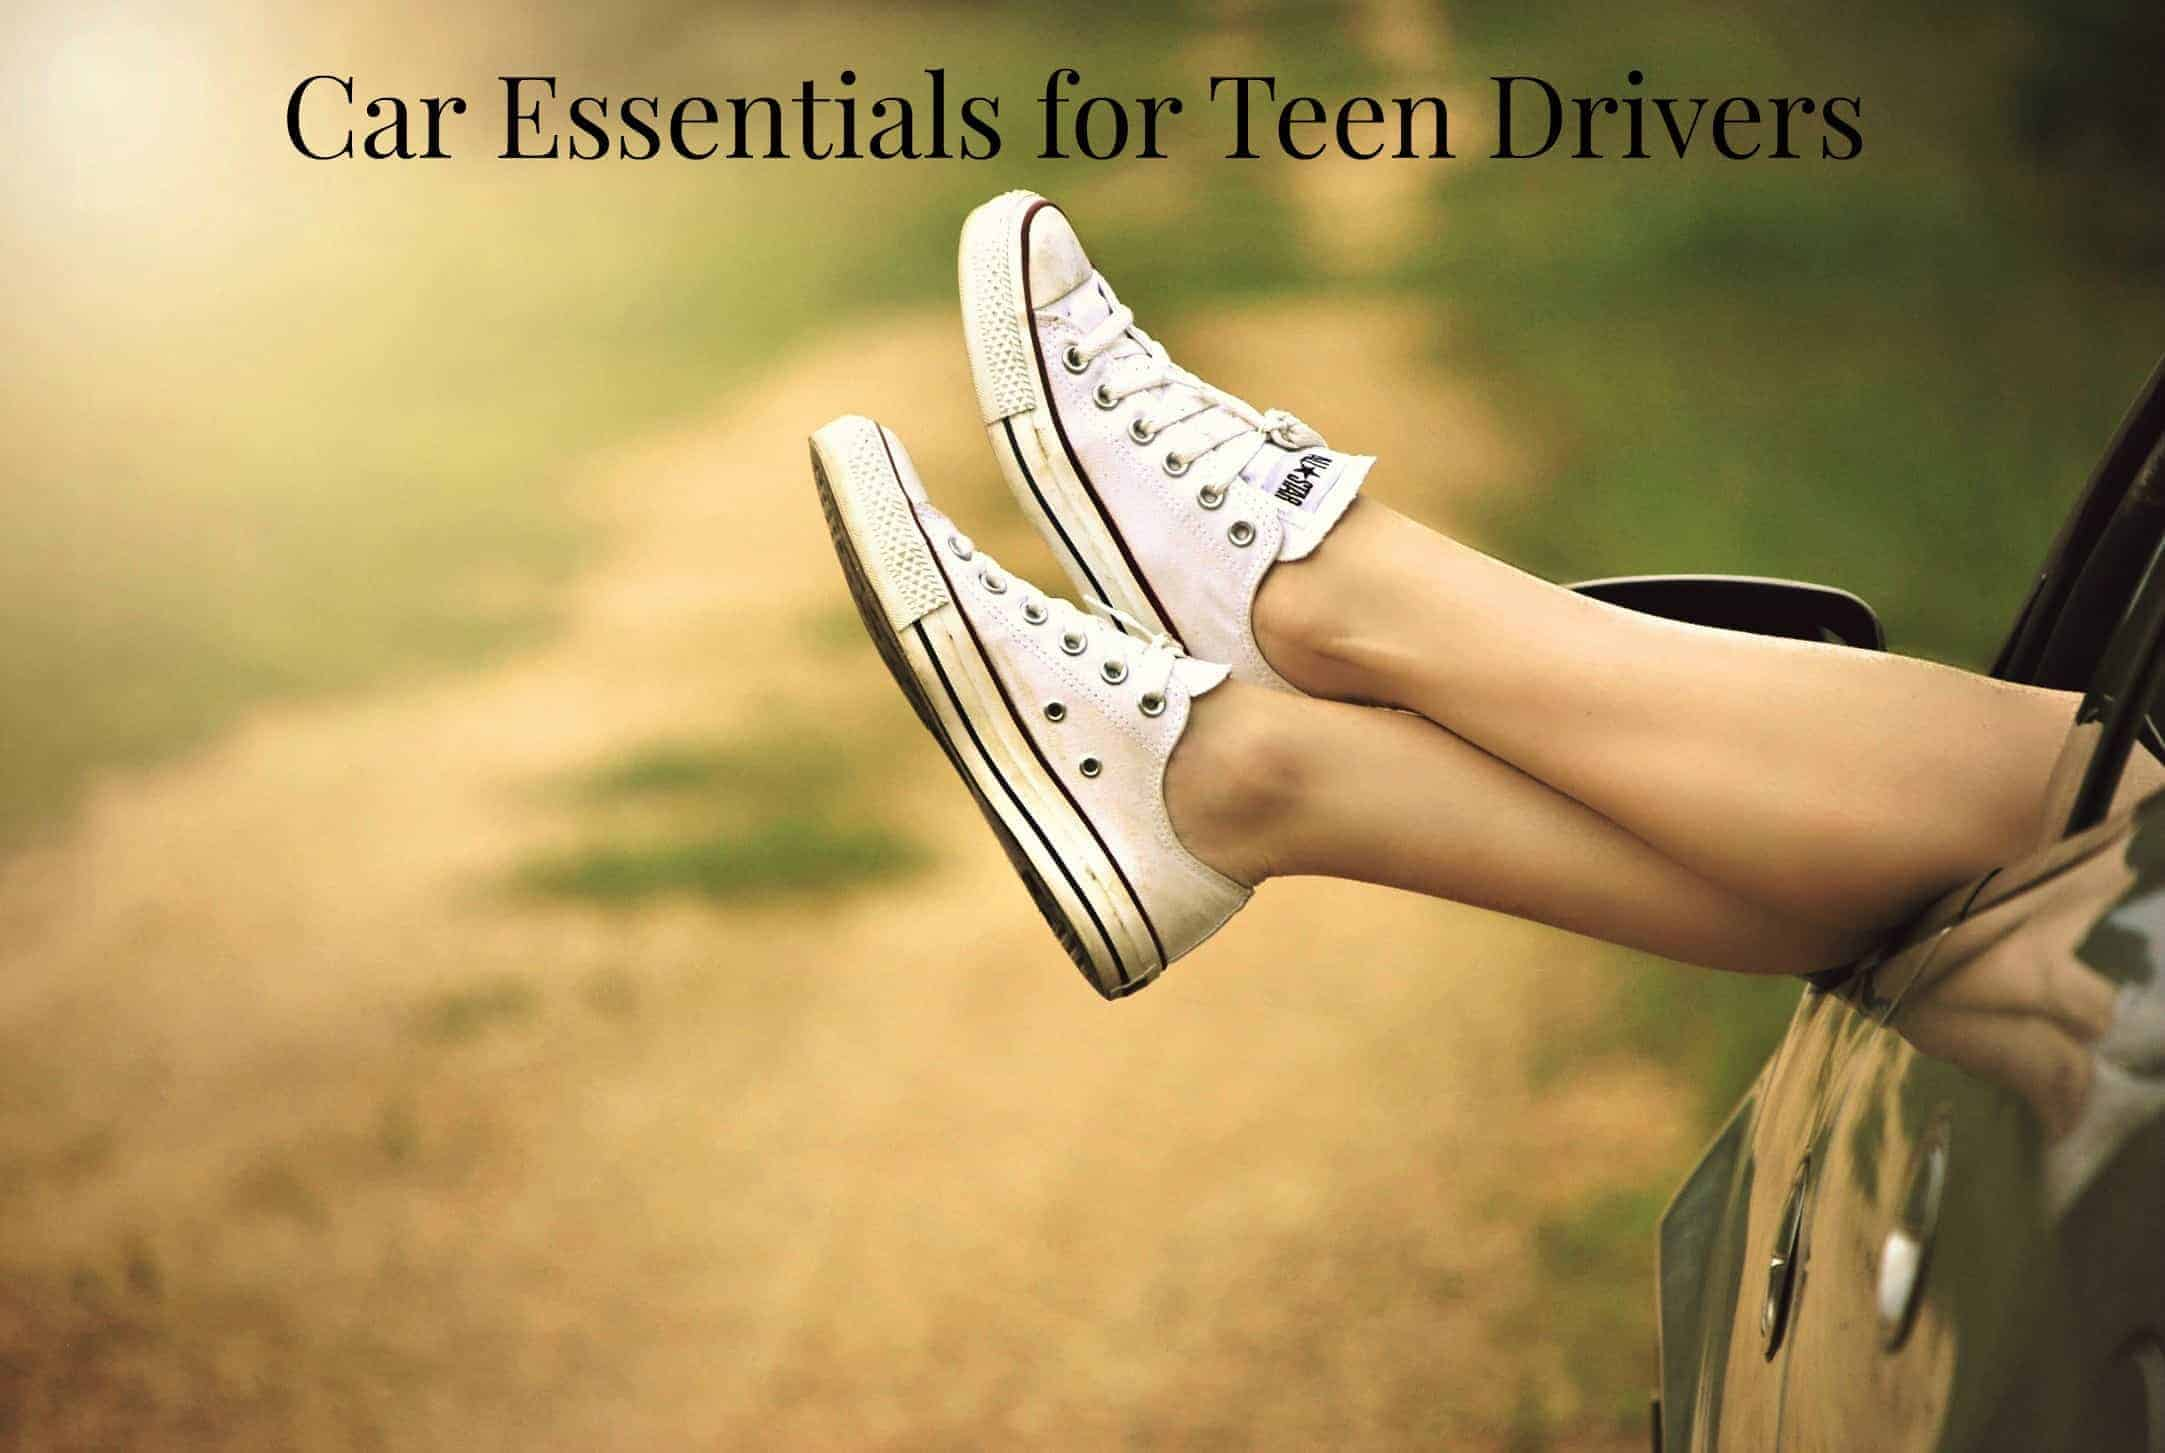 Car Essentials for Teen Drivers